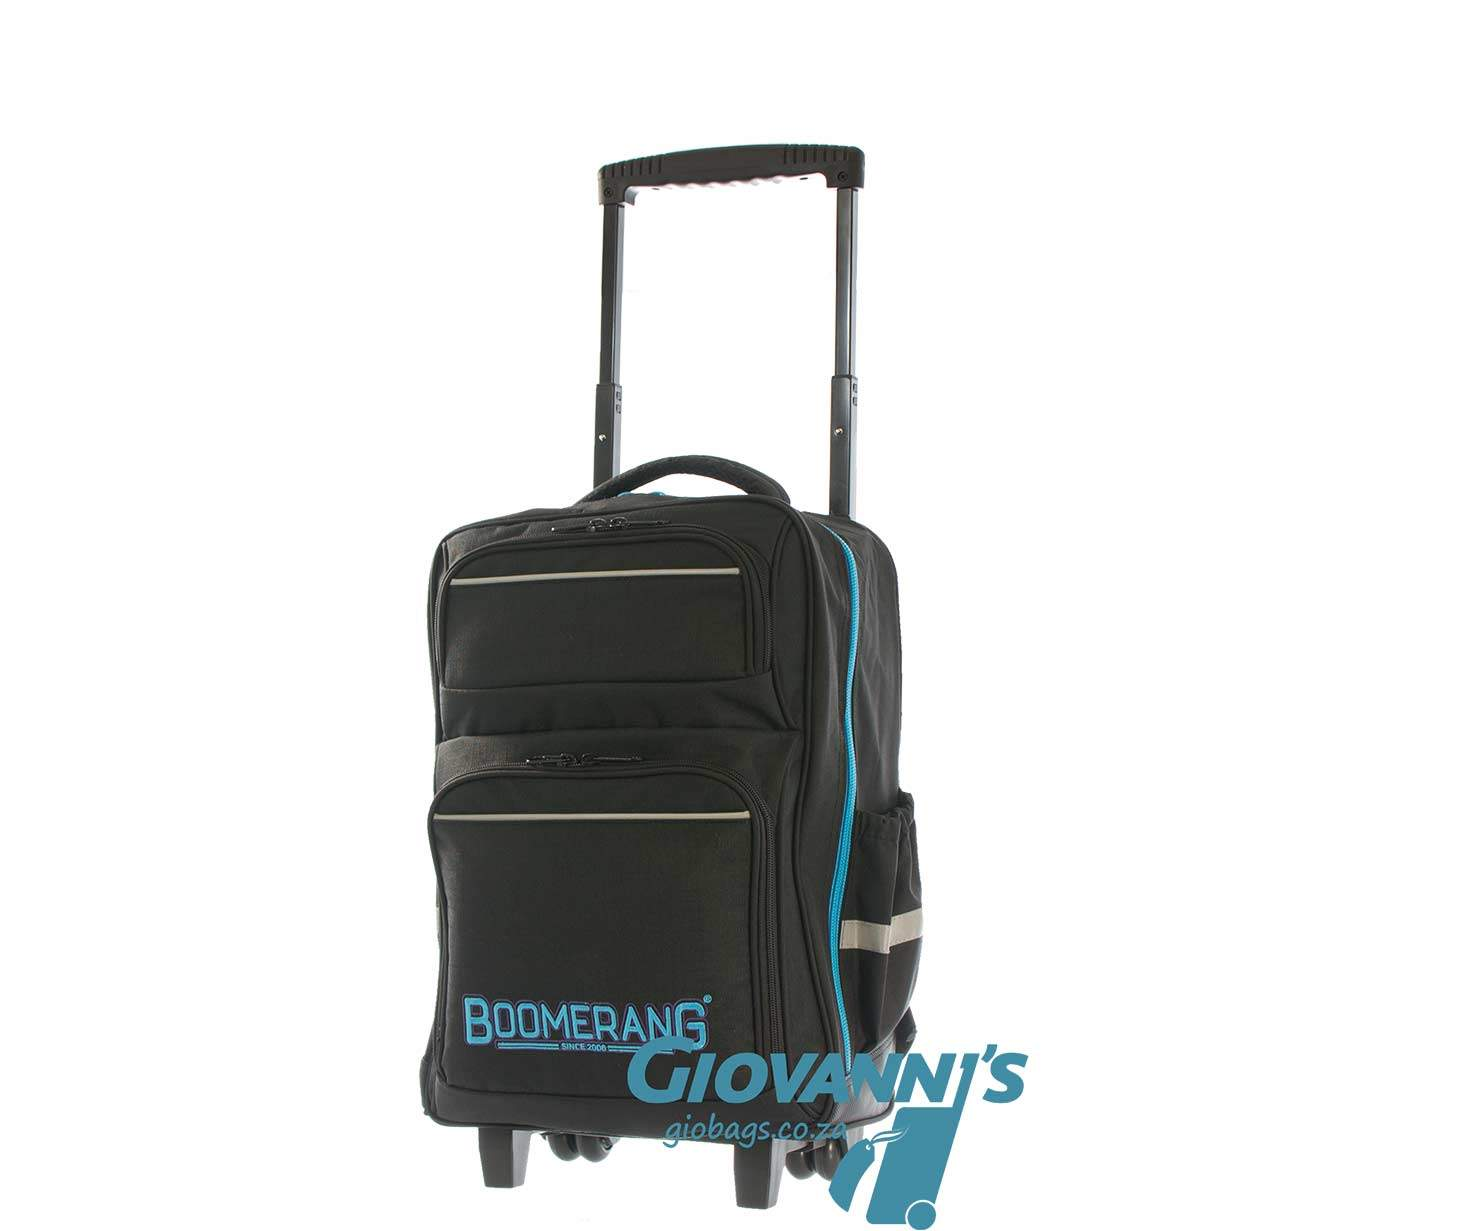 Giobags S-525 Large Boomerang Trolley School Bag